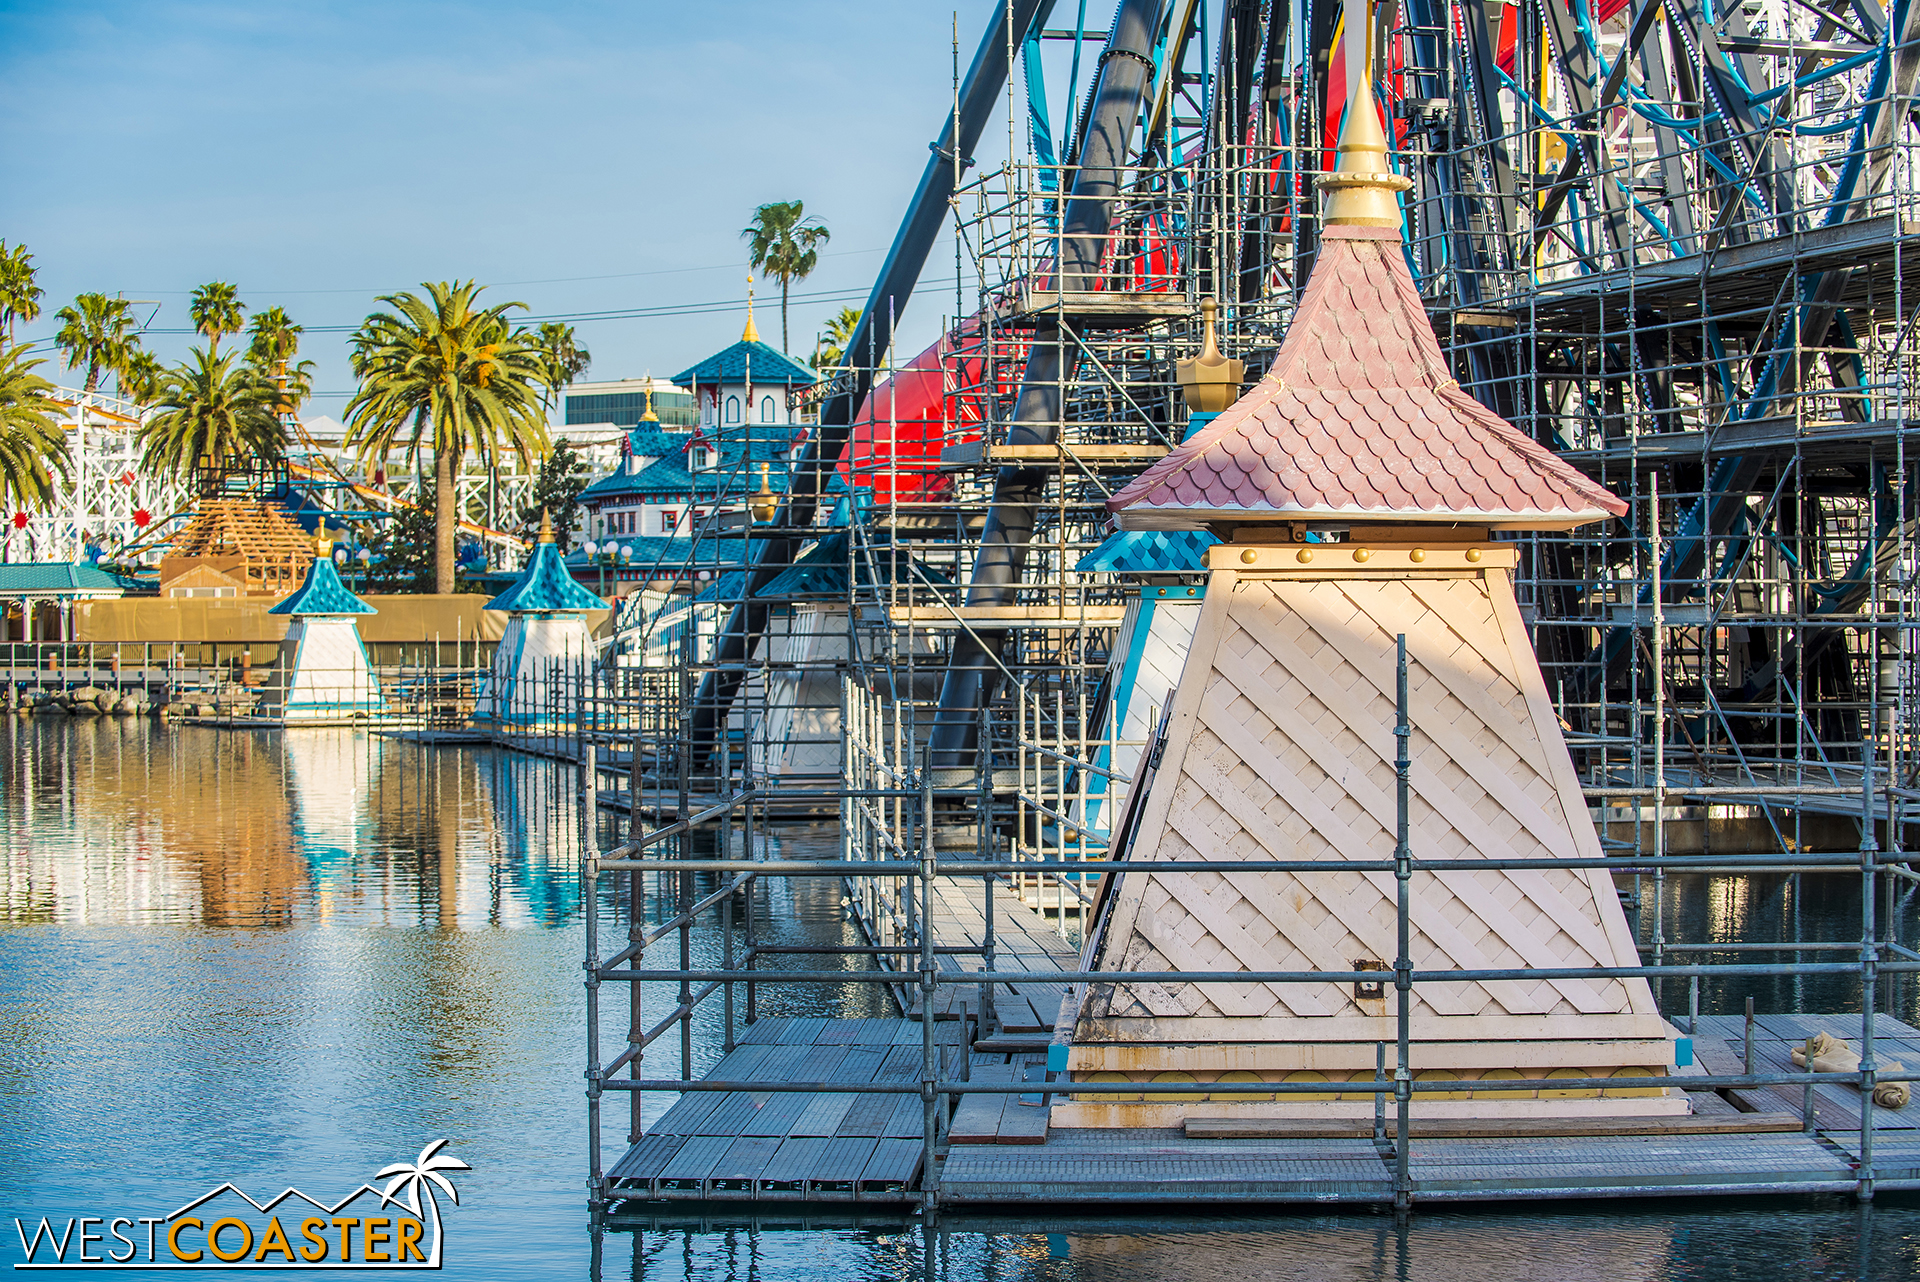 Speaking of new paint job, the red / turquoise Paradise / Pixar Pier color swap continues with the World of Color projection shelters.